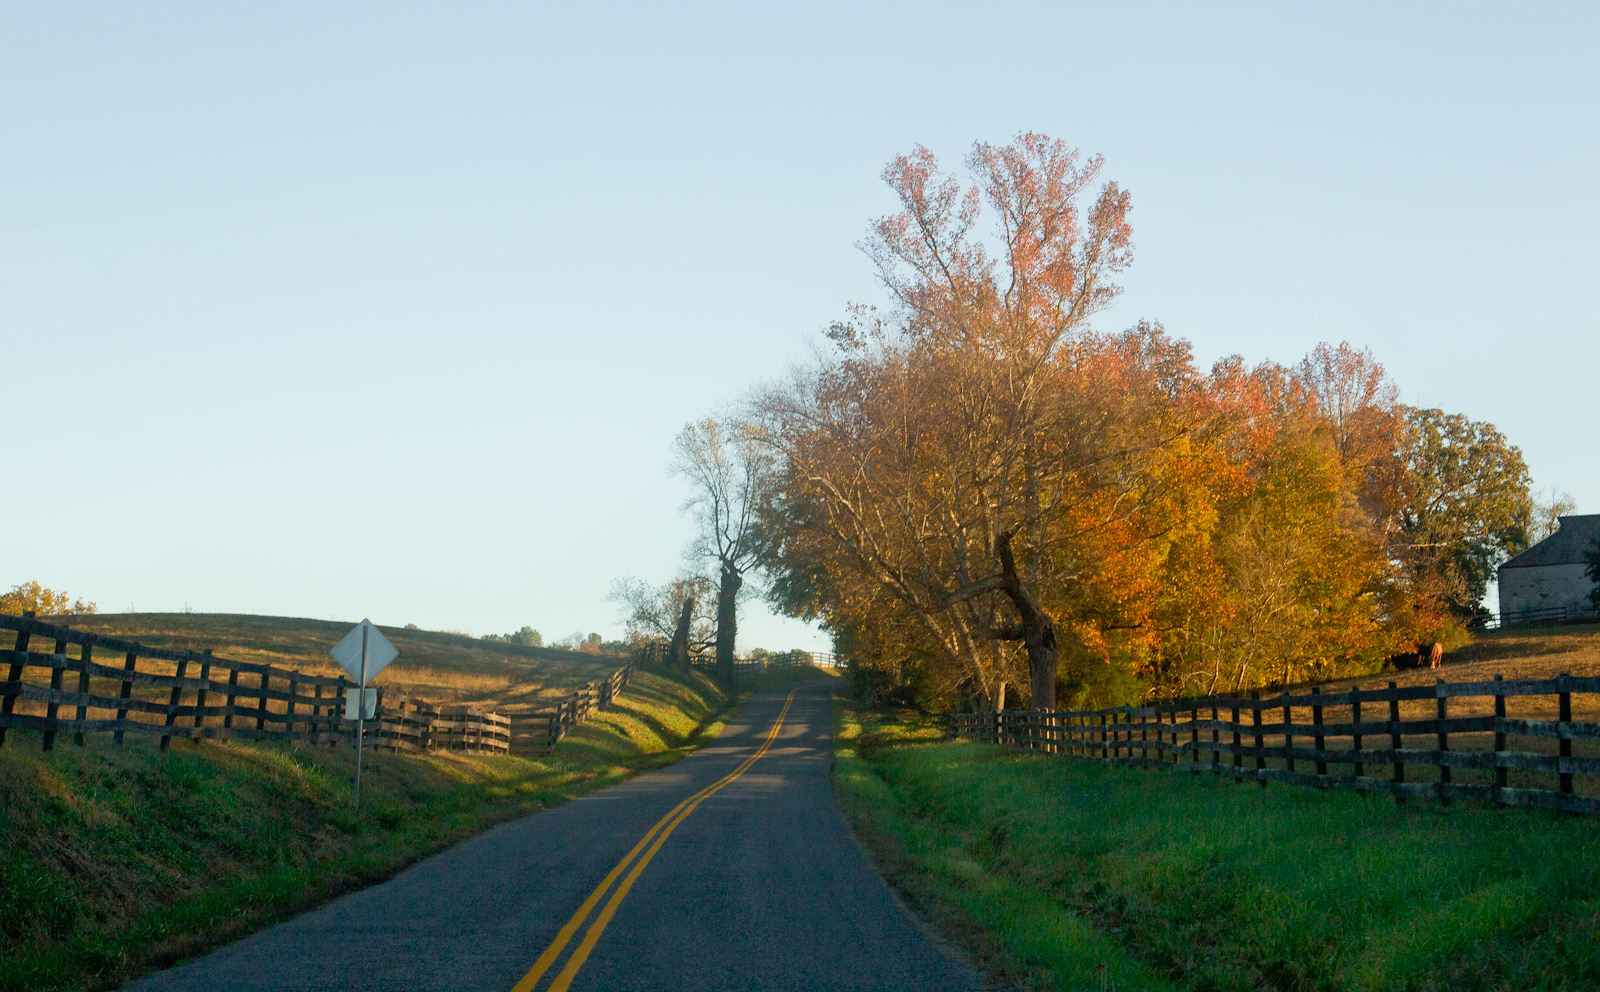 autumn-country-road-with-fence-50-of-1-3